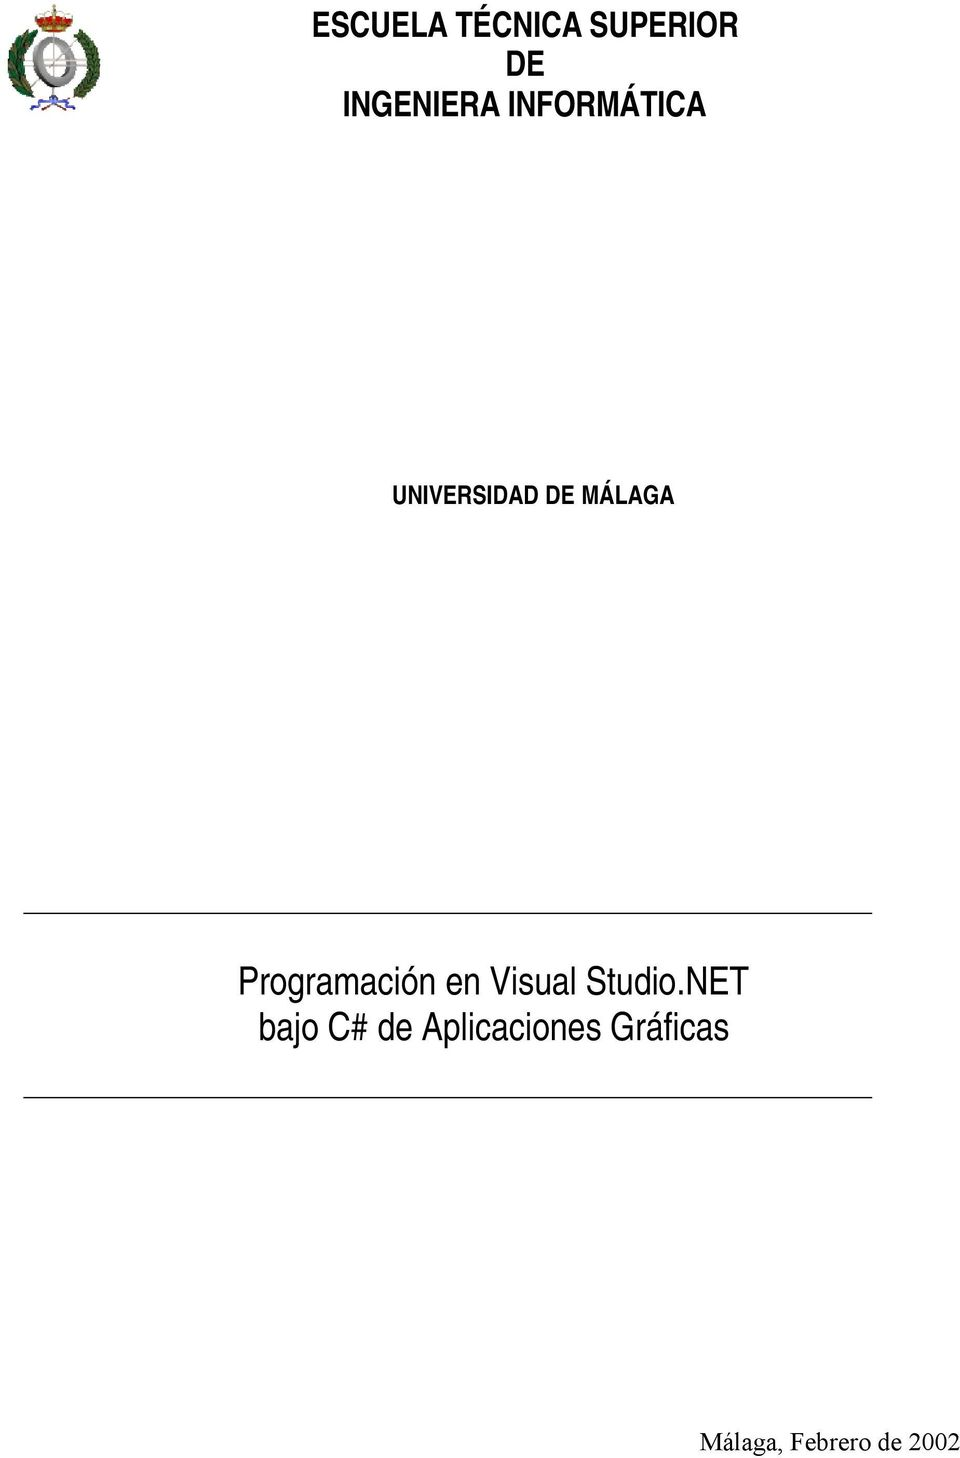 Programación en Visual Studio.